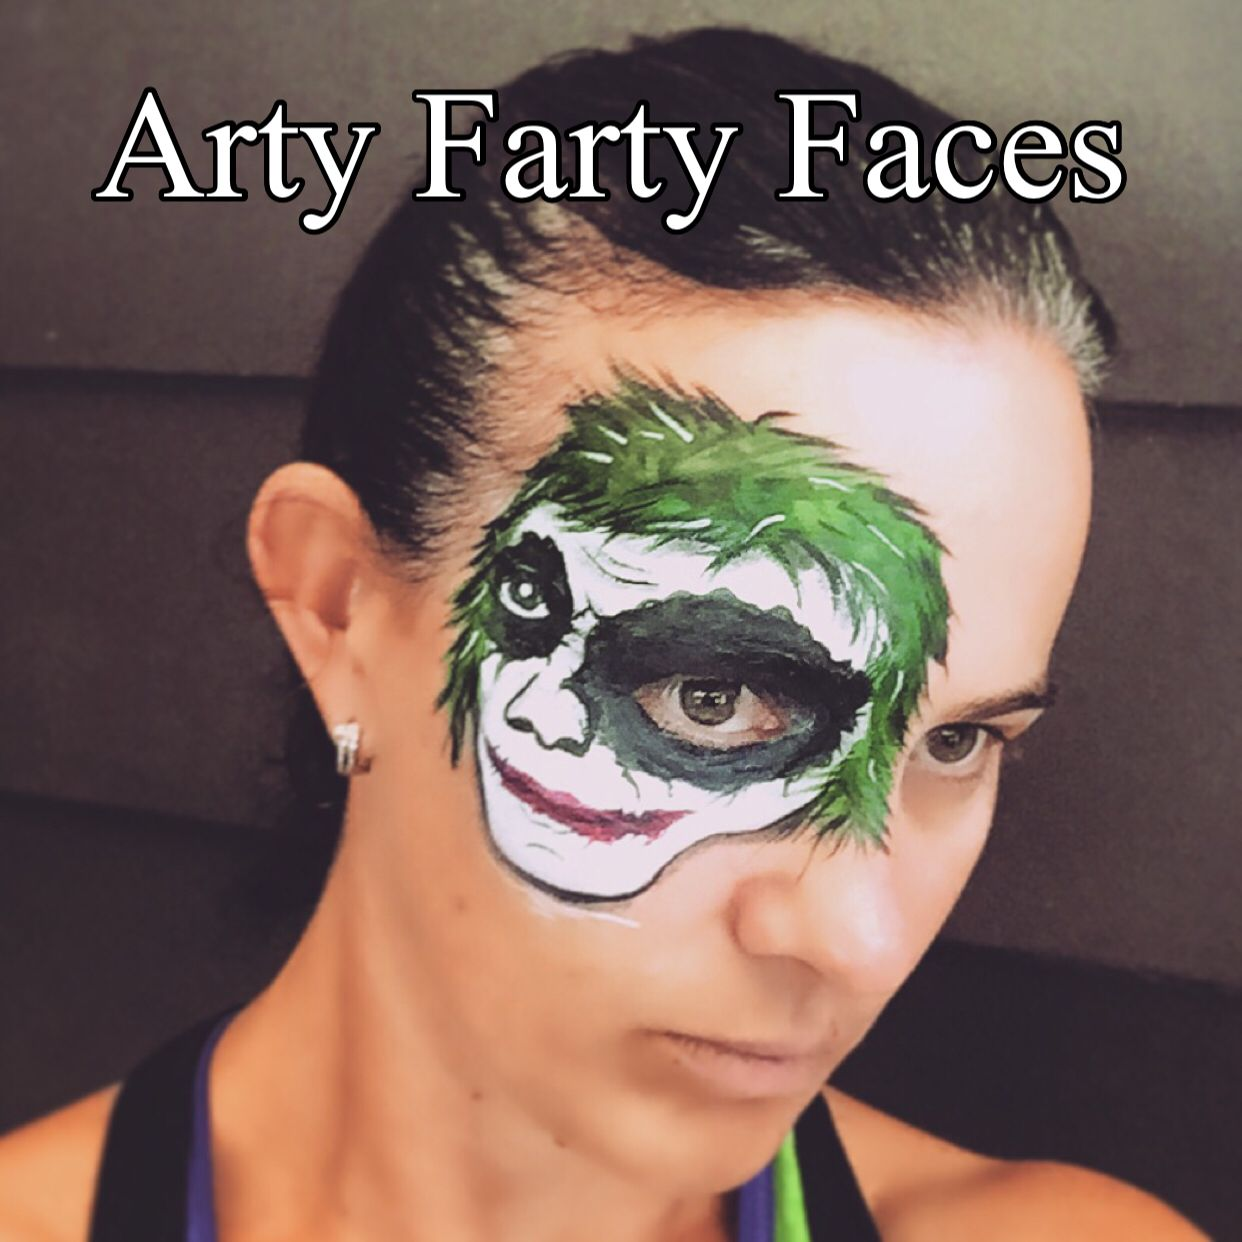 Your Joking   Face Painting - Movies & Toons   Pinterest   Face ...